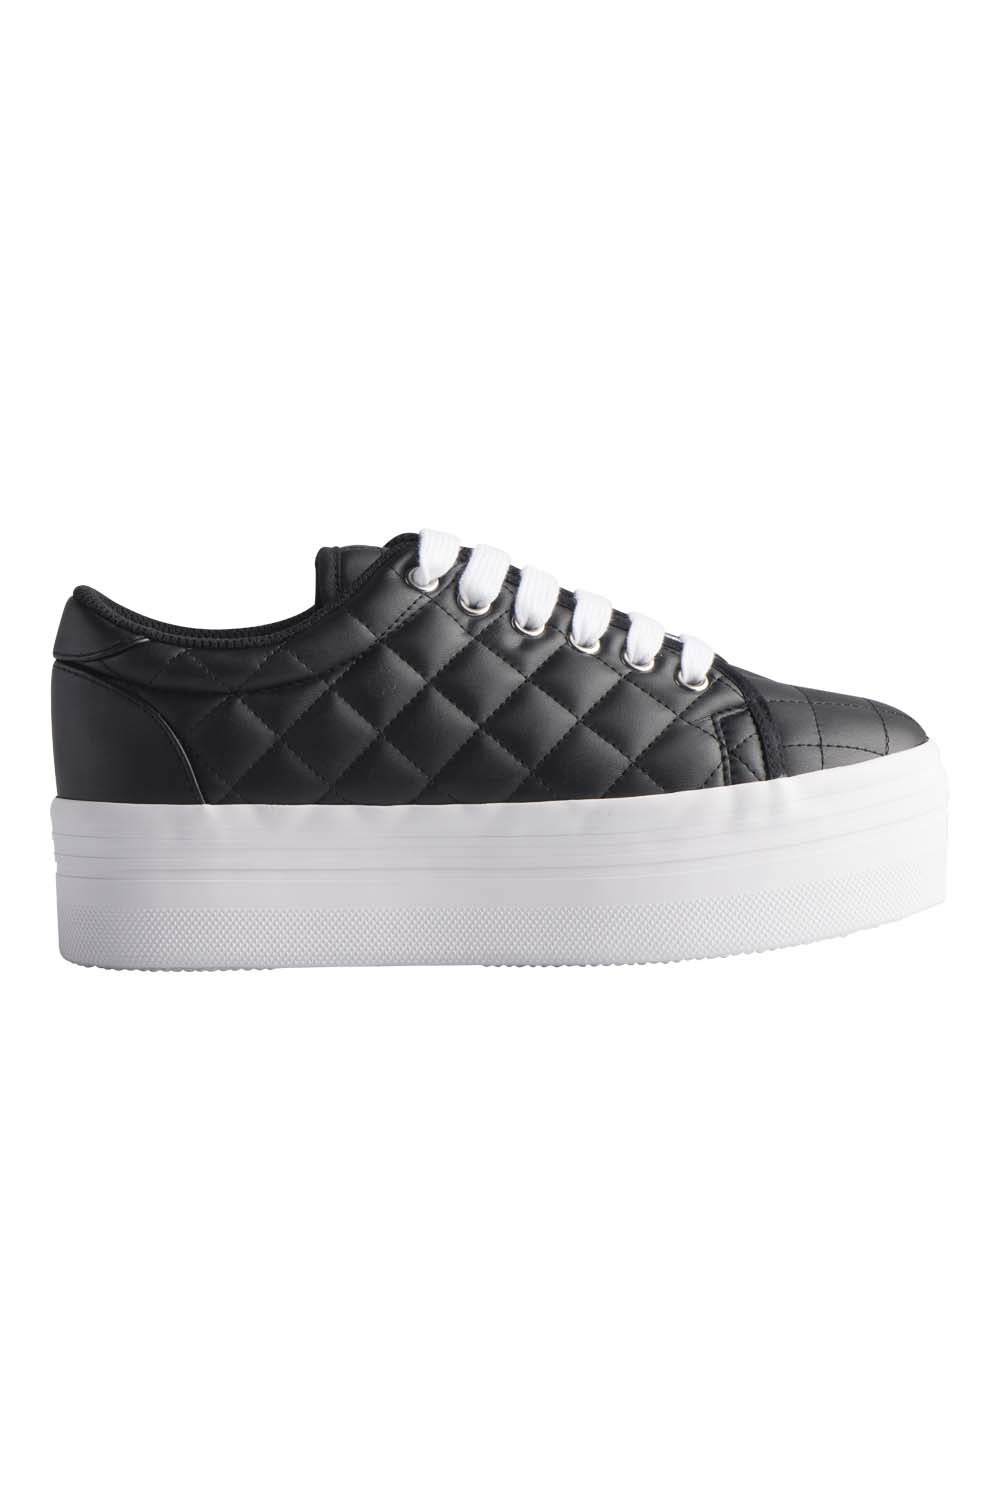 JEFFREY CAMPBELL SNEAKERS - ZOMG BLACK QUILTED.jpg